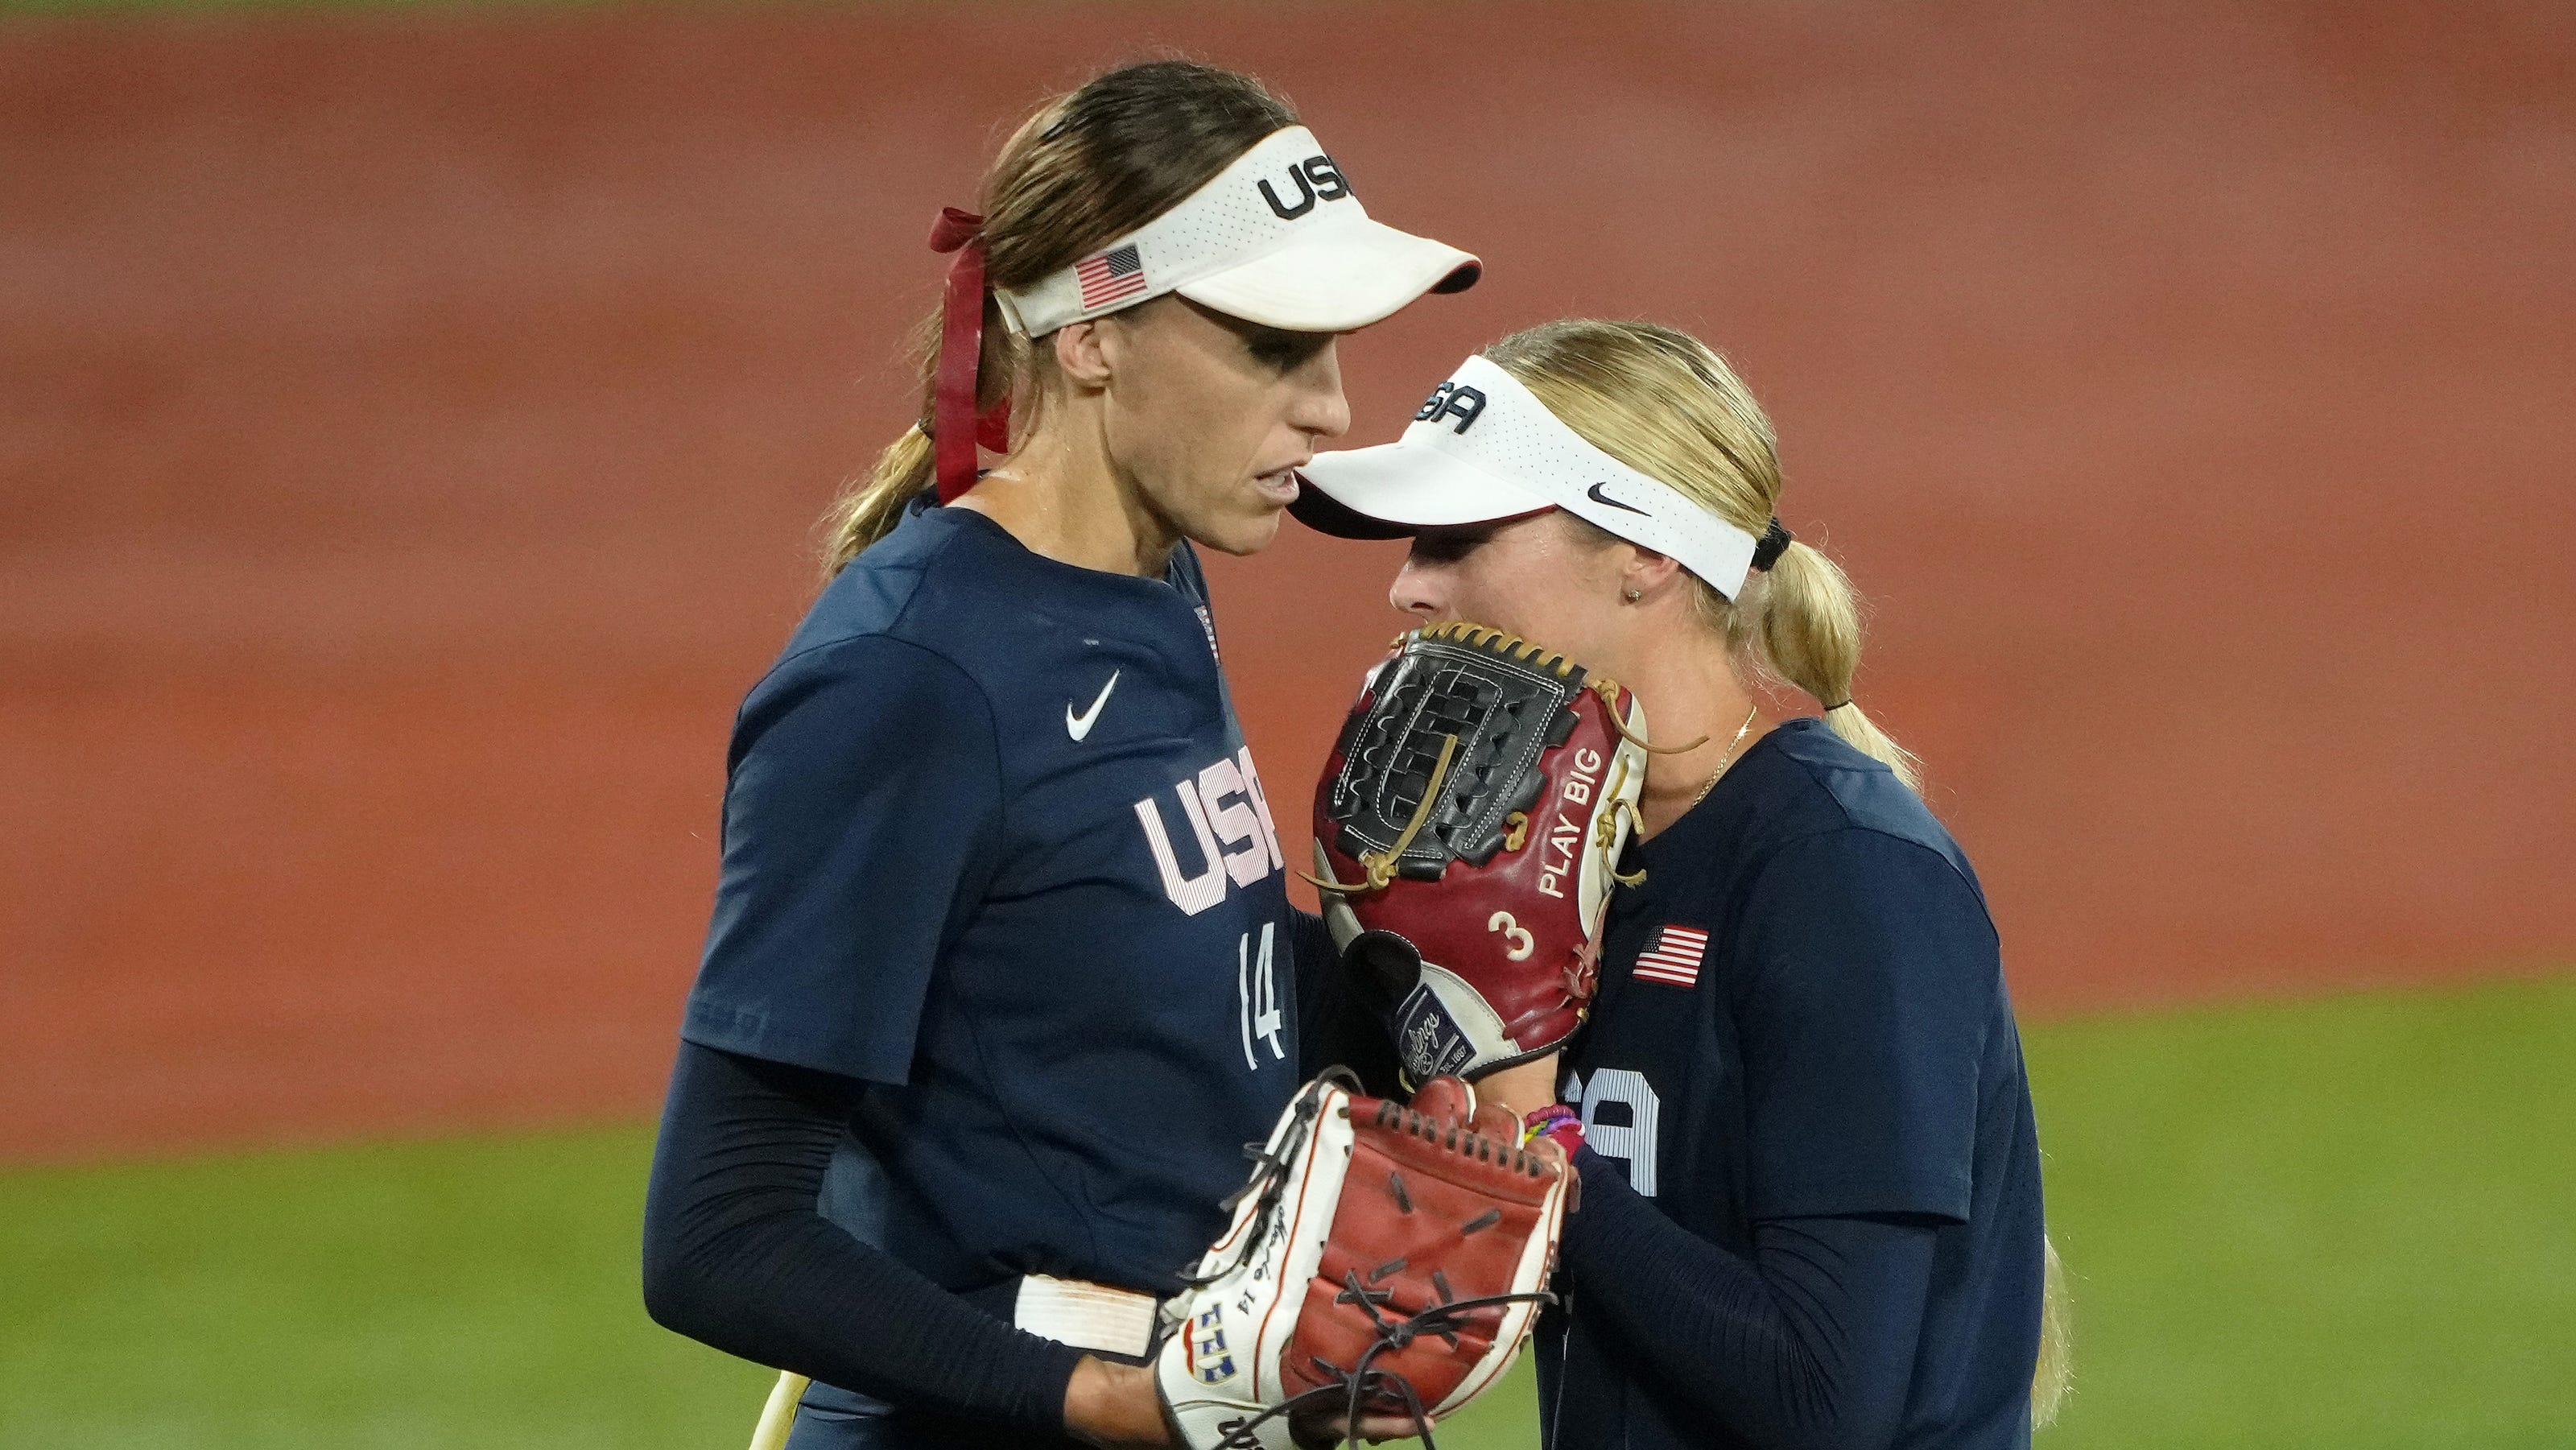 US softball loses to Japan again in gold medal game to take silver at Tokyo Olympics